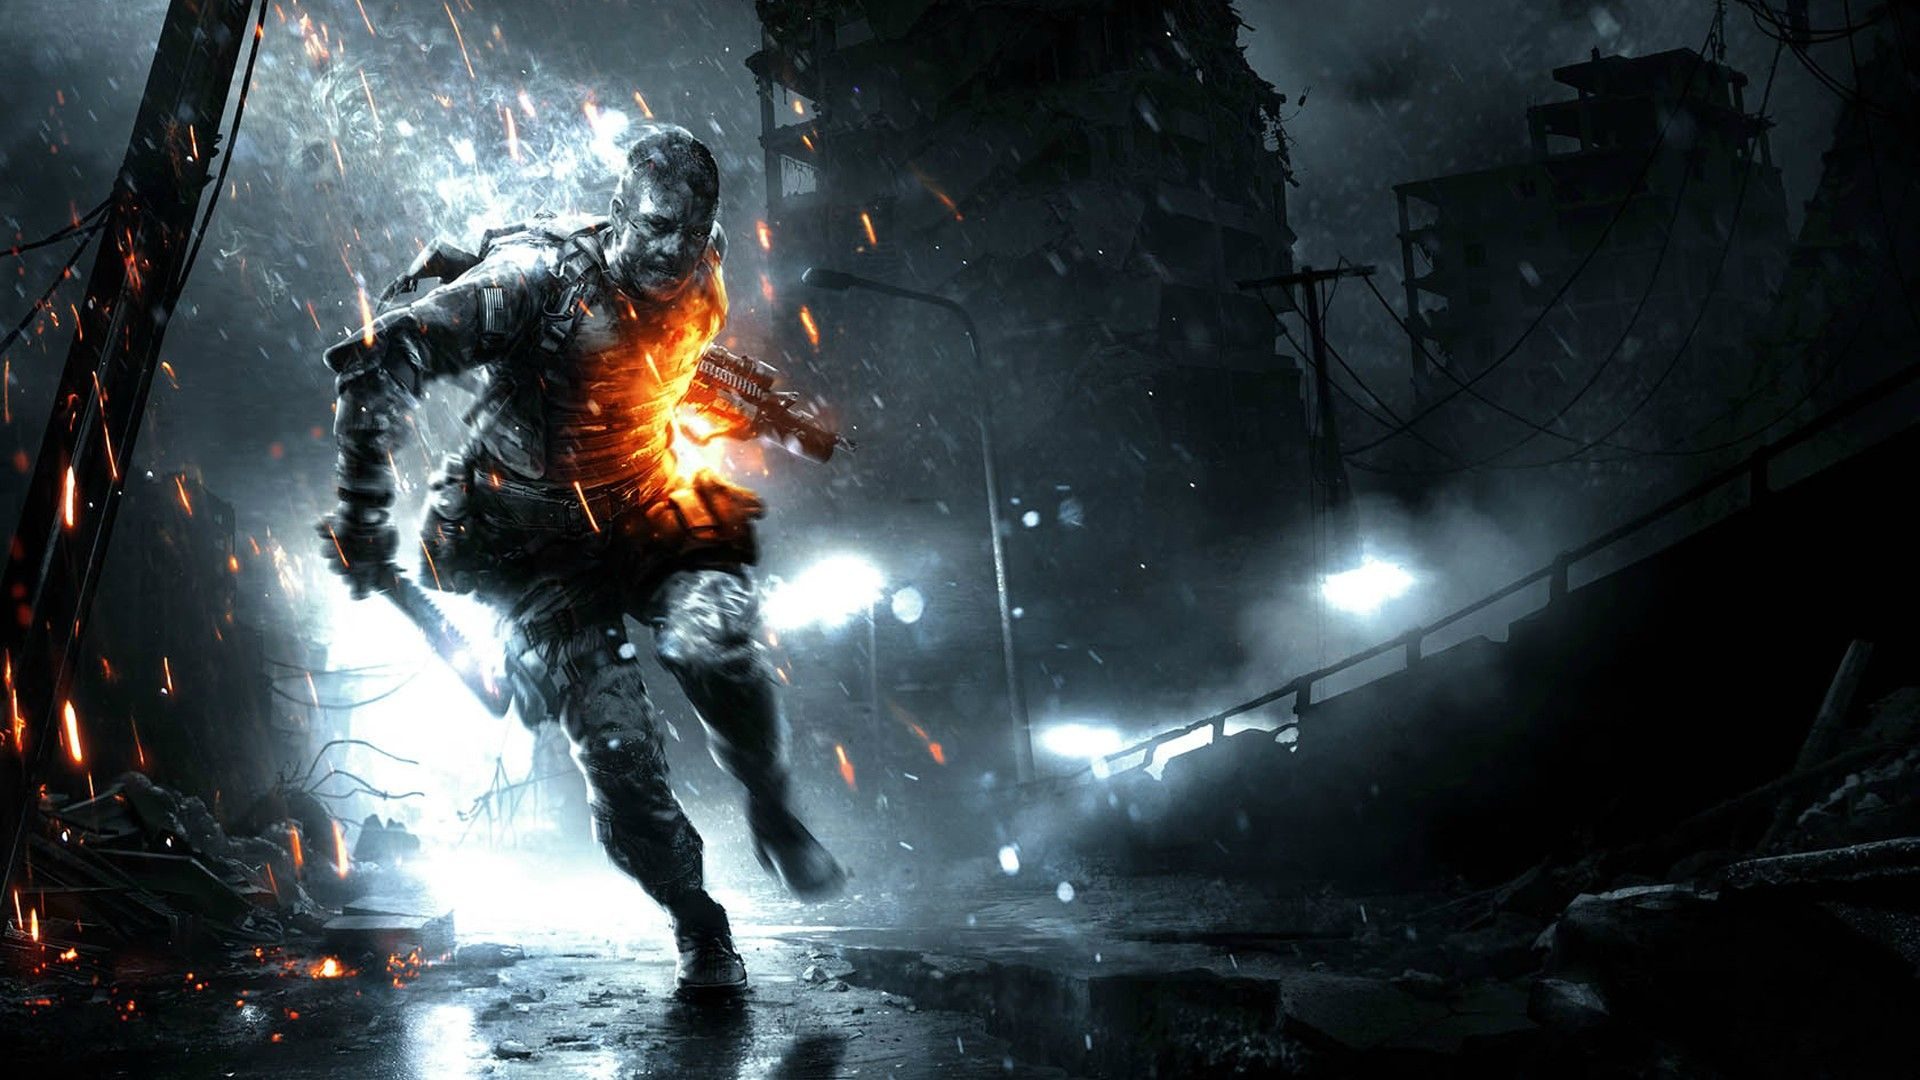 A Collection Of 354 Gaming Wallpapers All 1080p Best Gaming Wallpapers Gaming Wallpapers Desktop Wallpaper